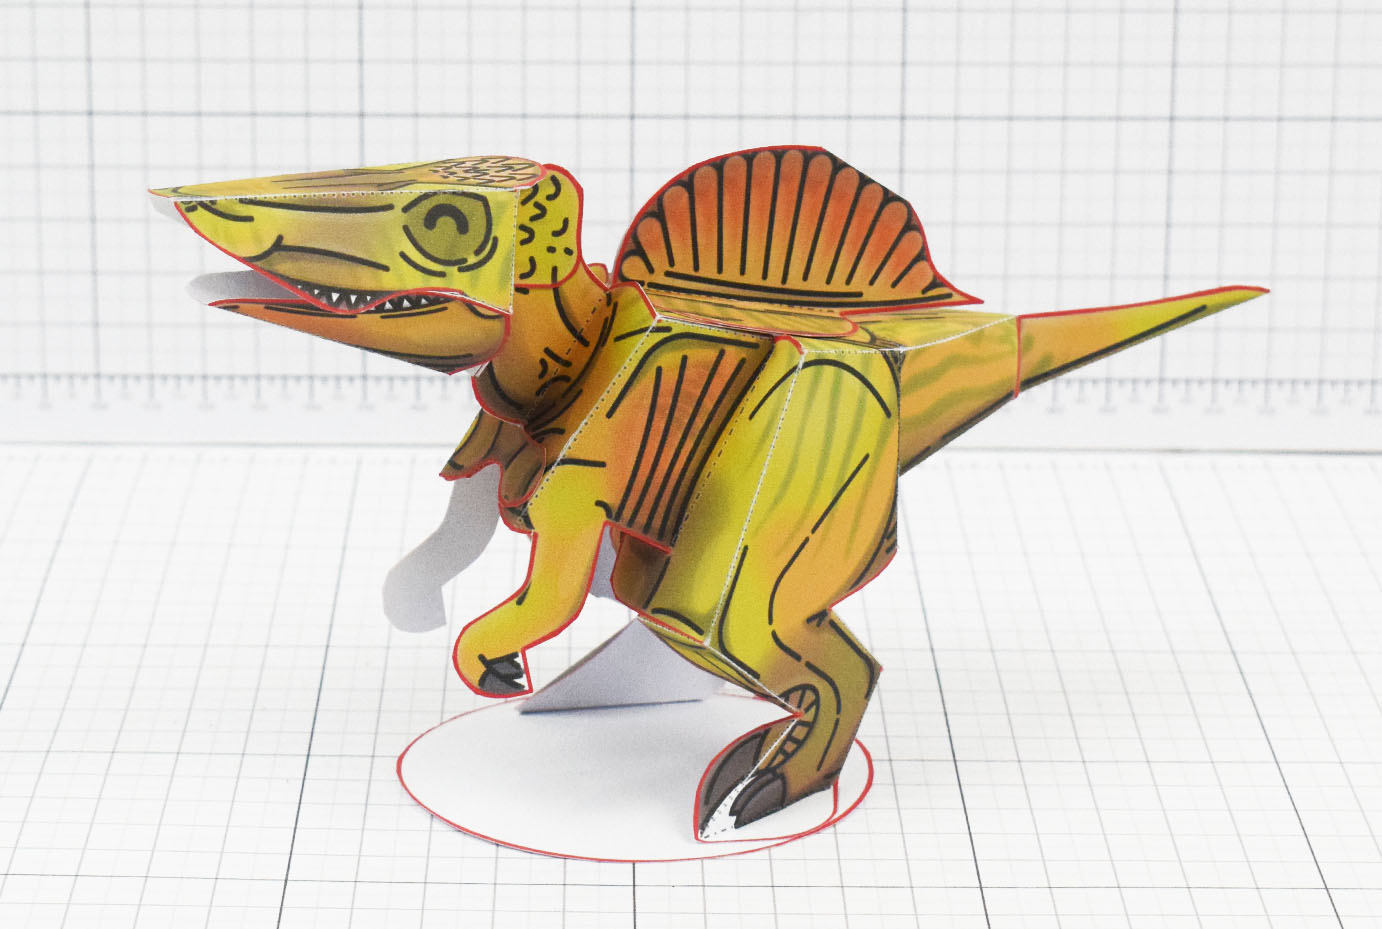 Twinkl dinosaur Spinosaurus paper toy craft model educational printable graphic design Alex Gwynne